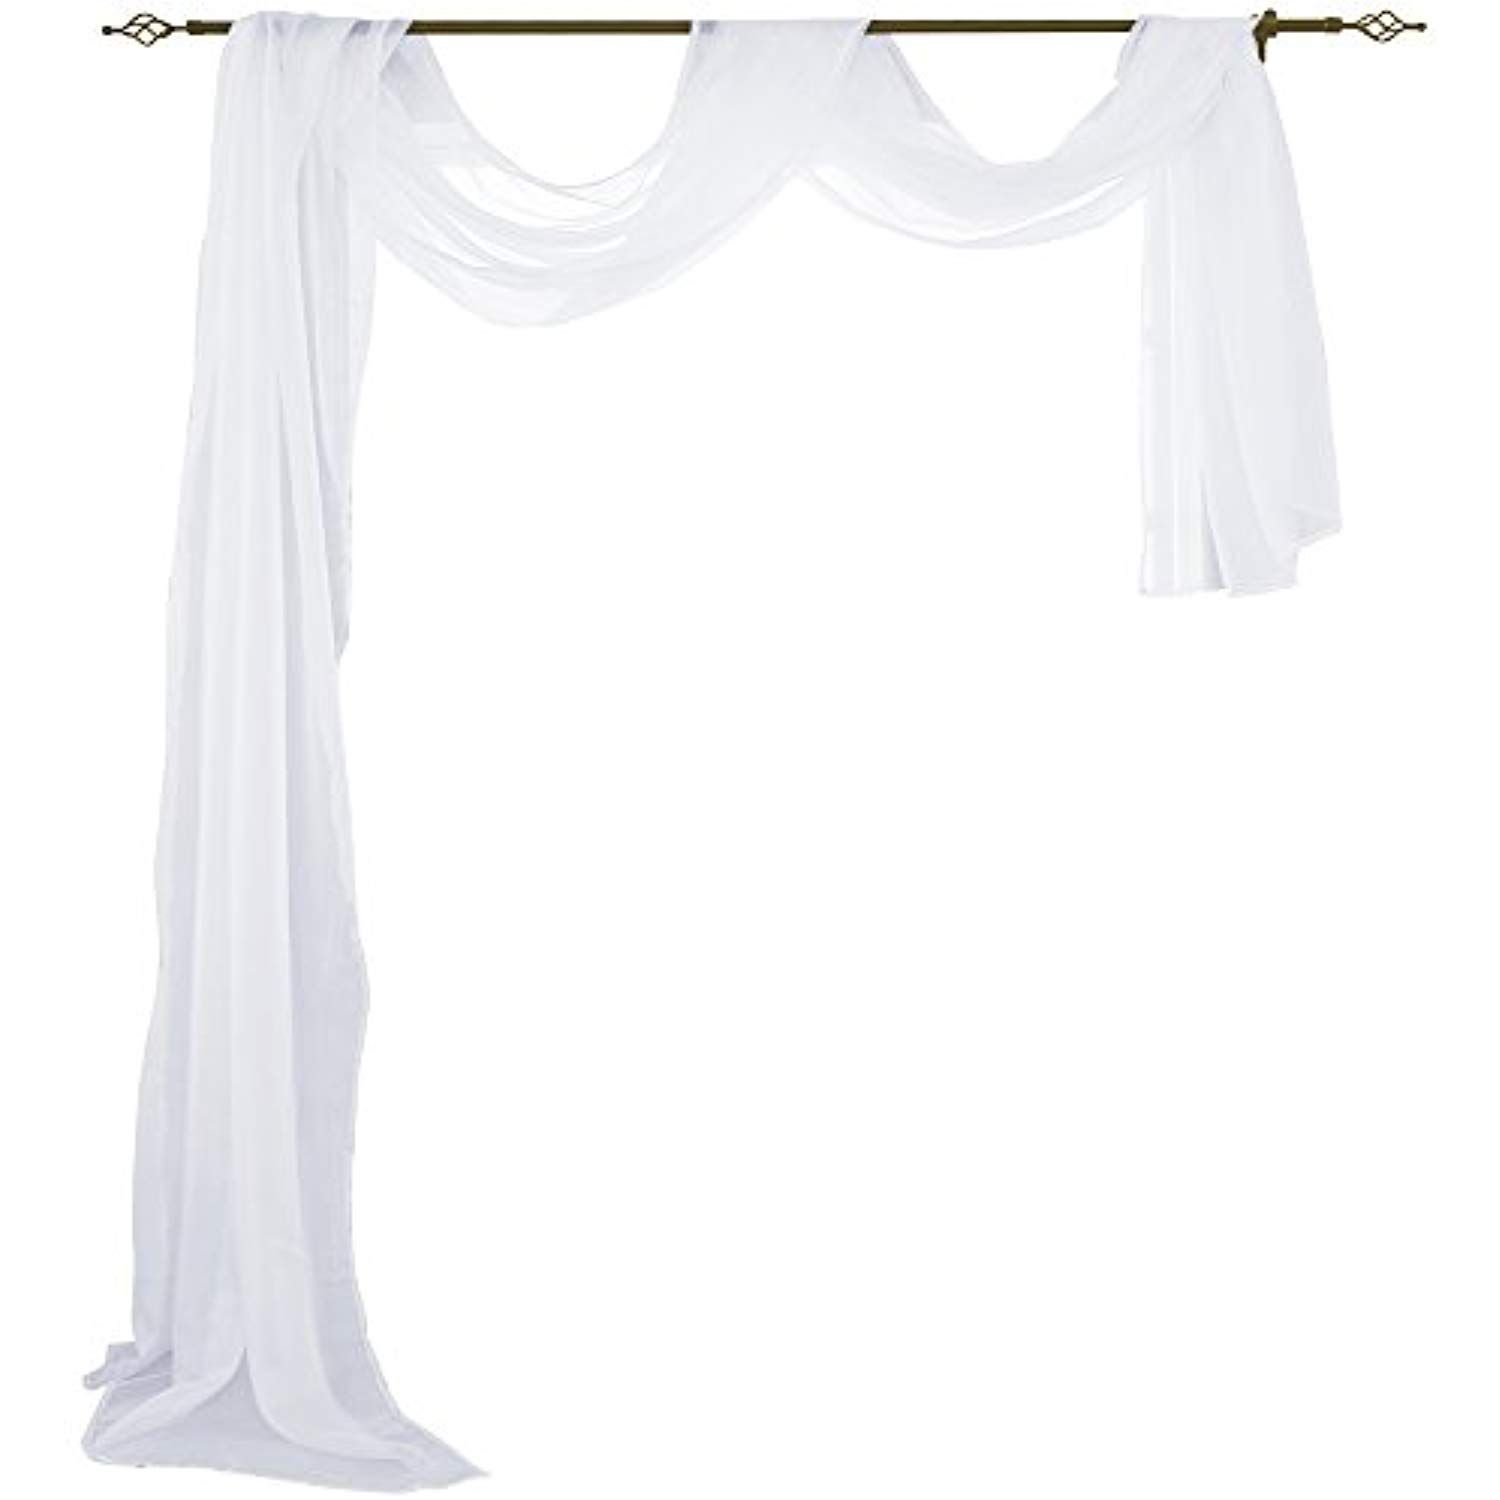 Home decor window  holking sheer panel curtains scarfhome decor window sheer valance